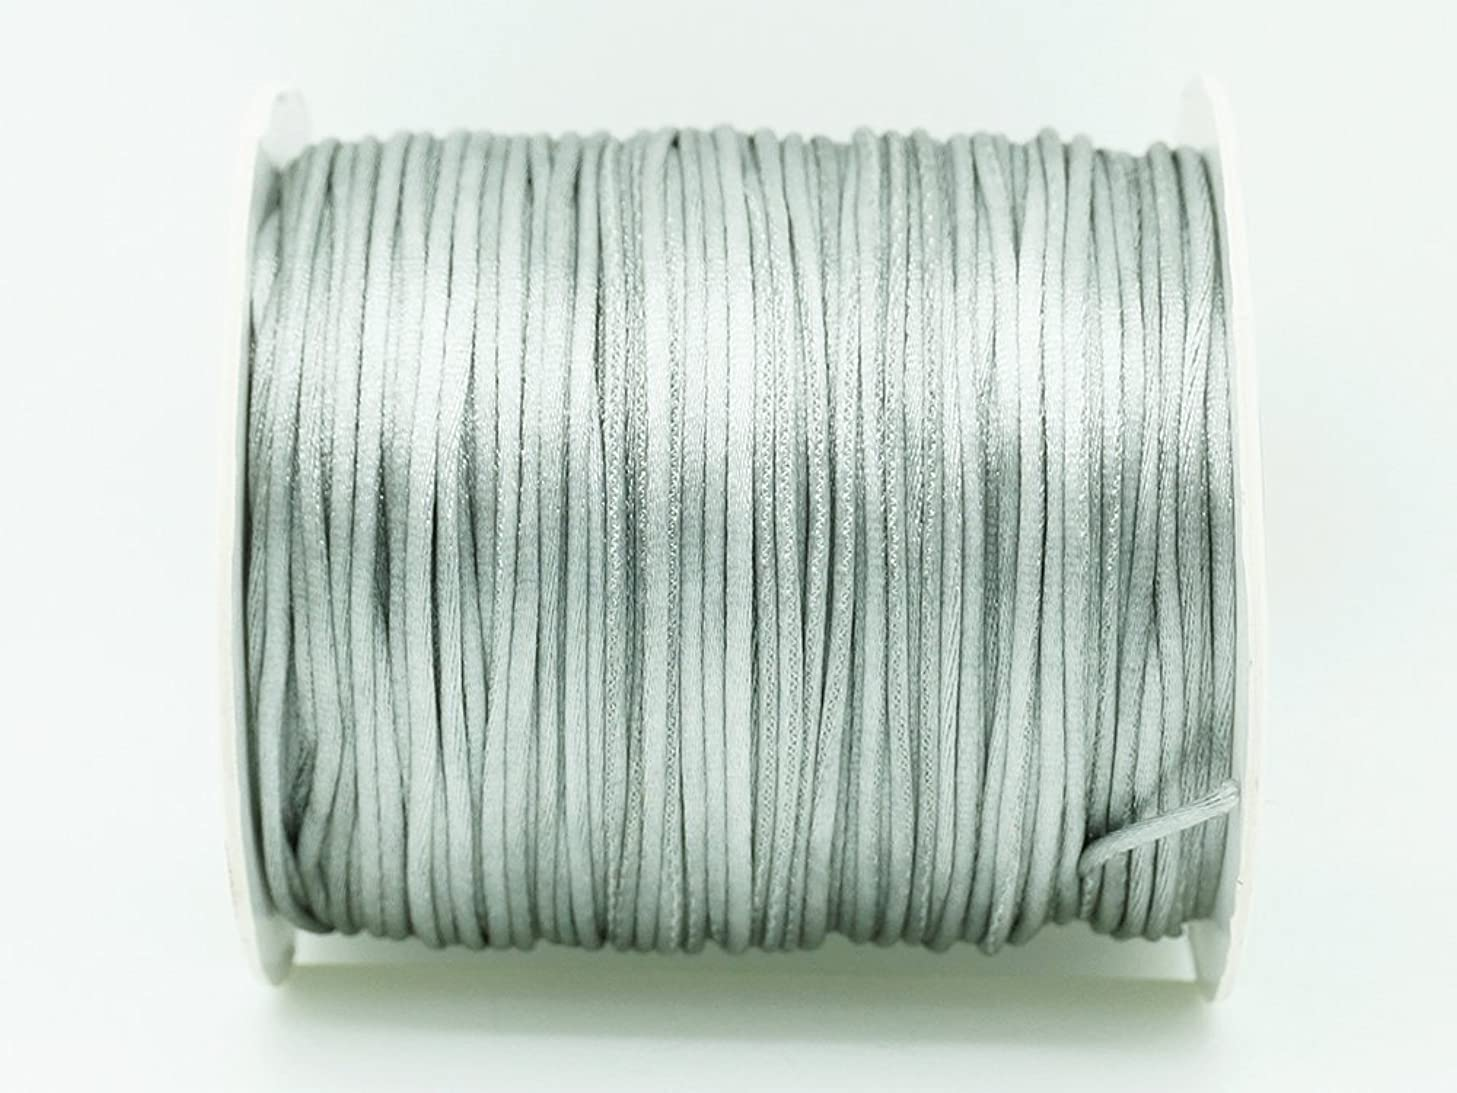 GREY 1mm Bugtail Satin Cord Shamballa Macrame Beading Nylon Kumihimo String (210ft Spool)